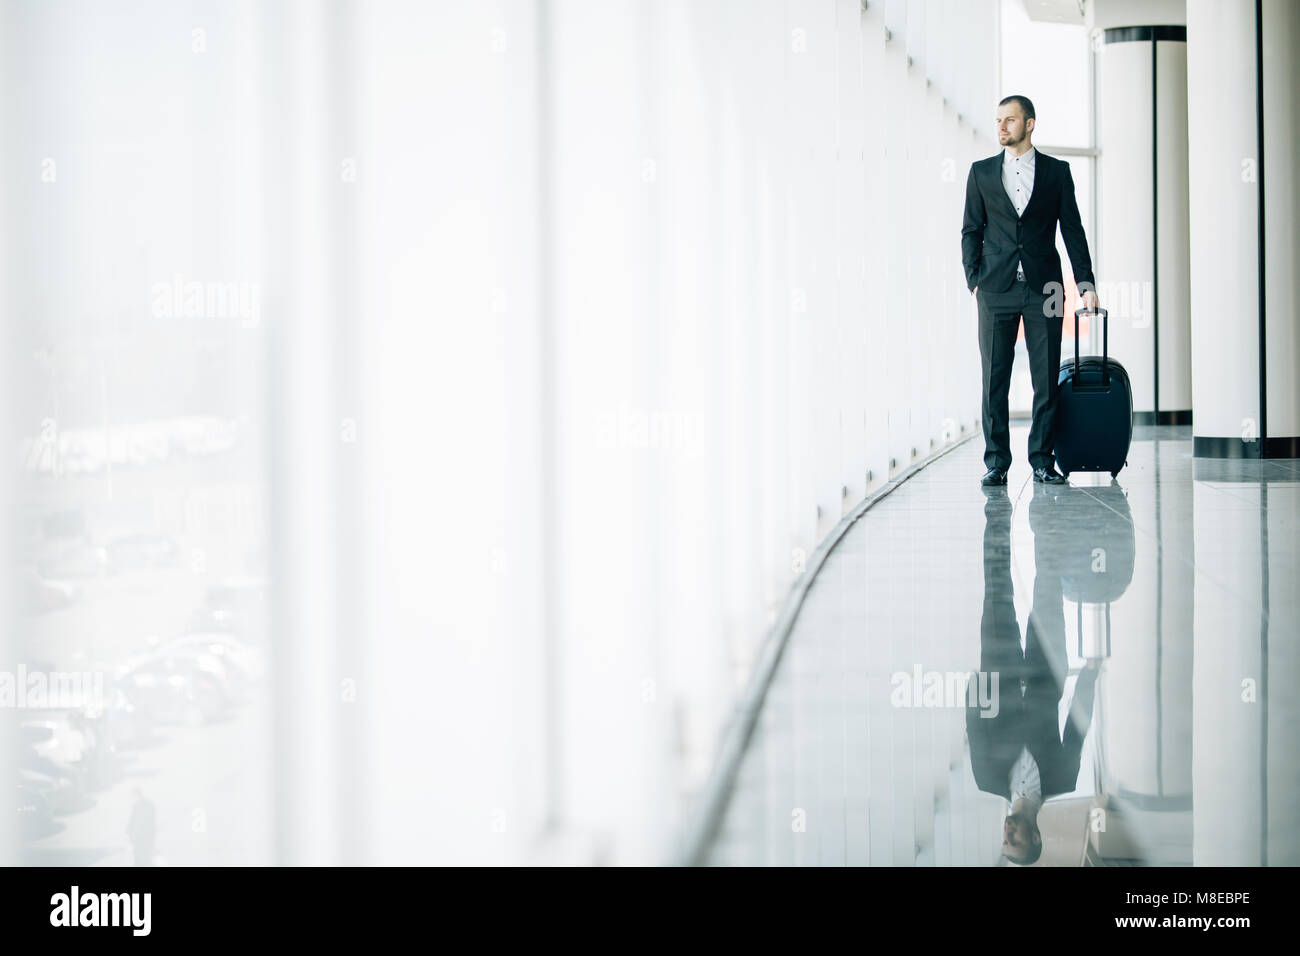 Business man at international airport moving to terminal gate for airplane travel trip. - Stock Image